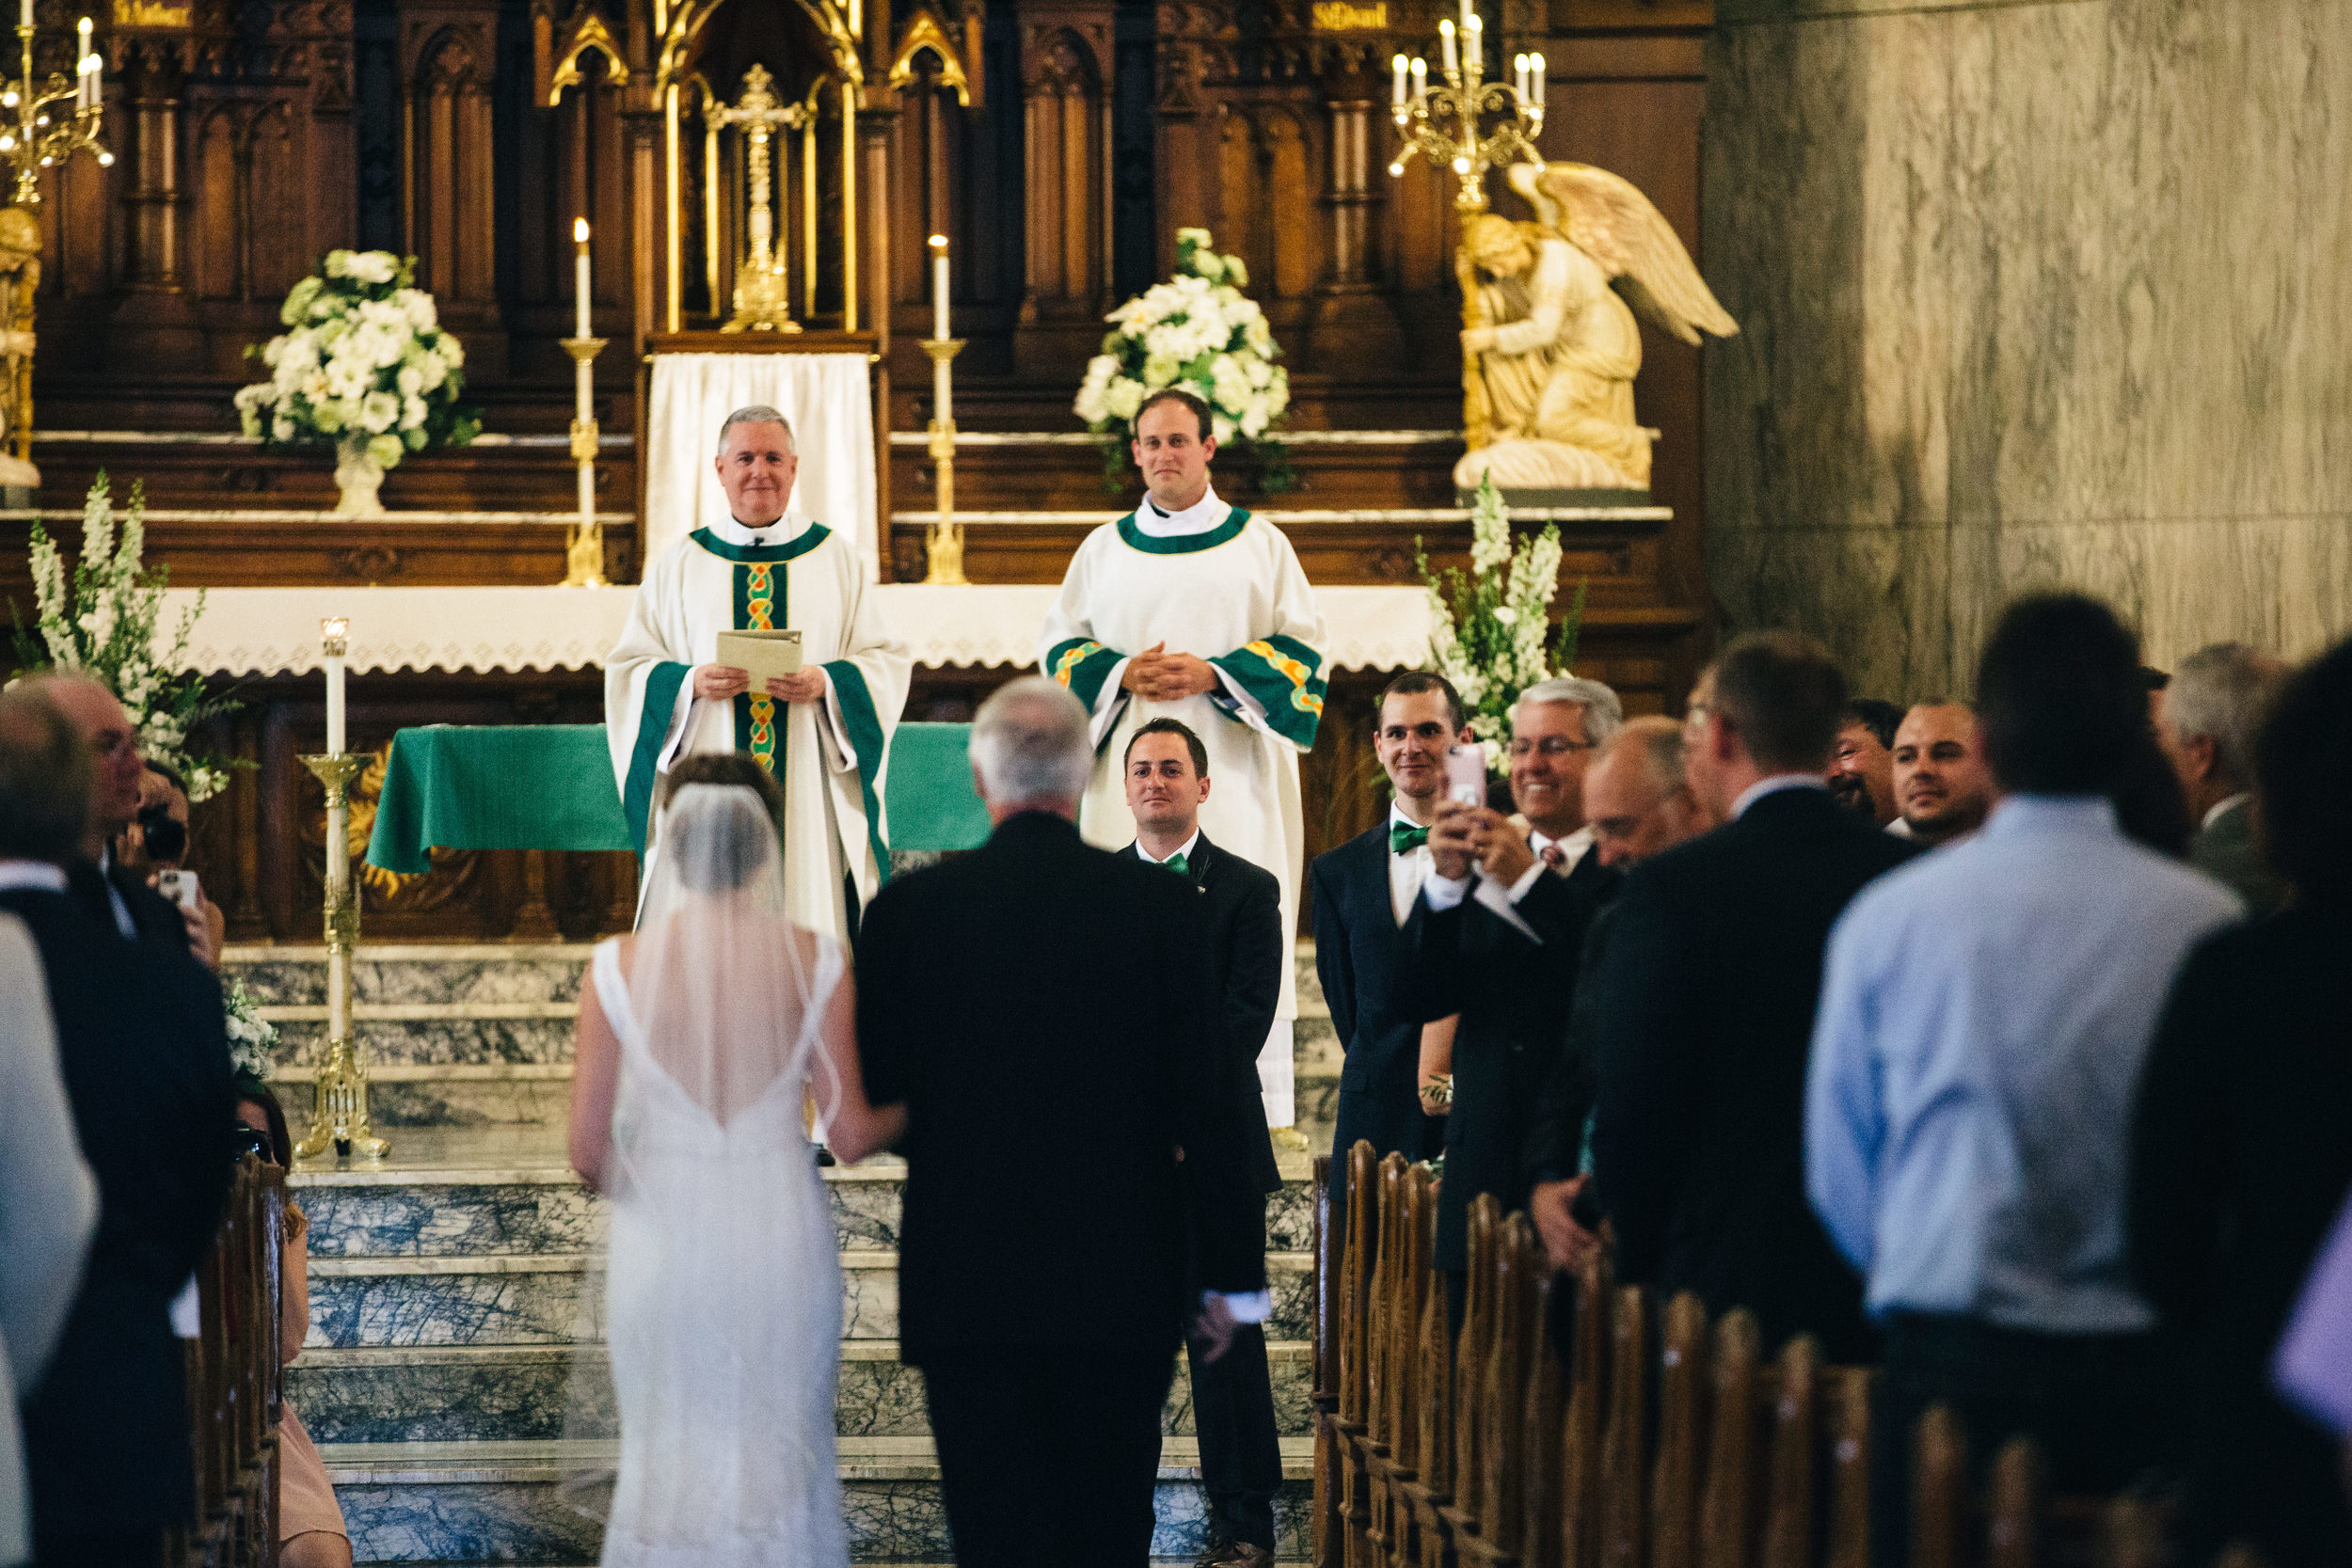 Wedding ceremony at Historic St.Patricks Catholic Church.